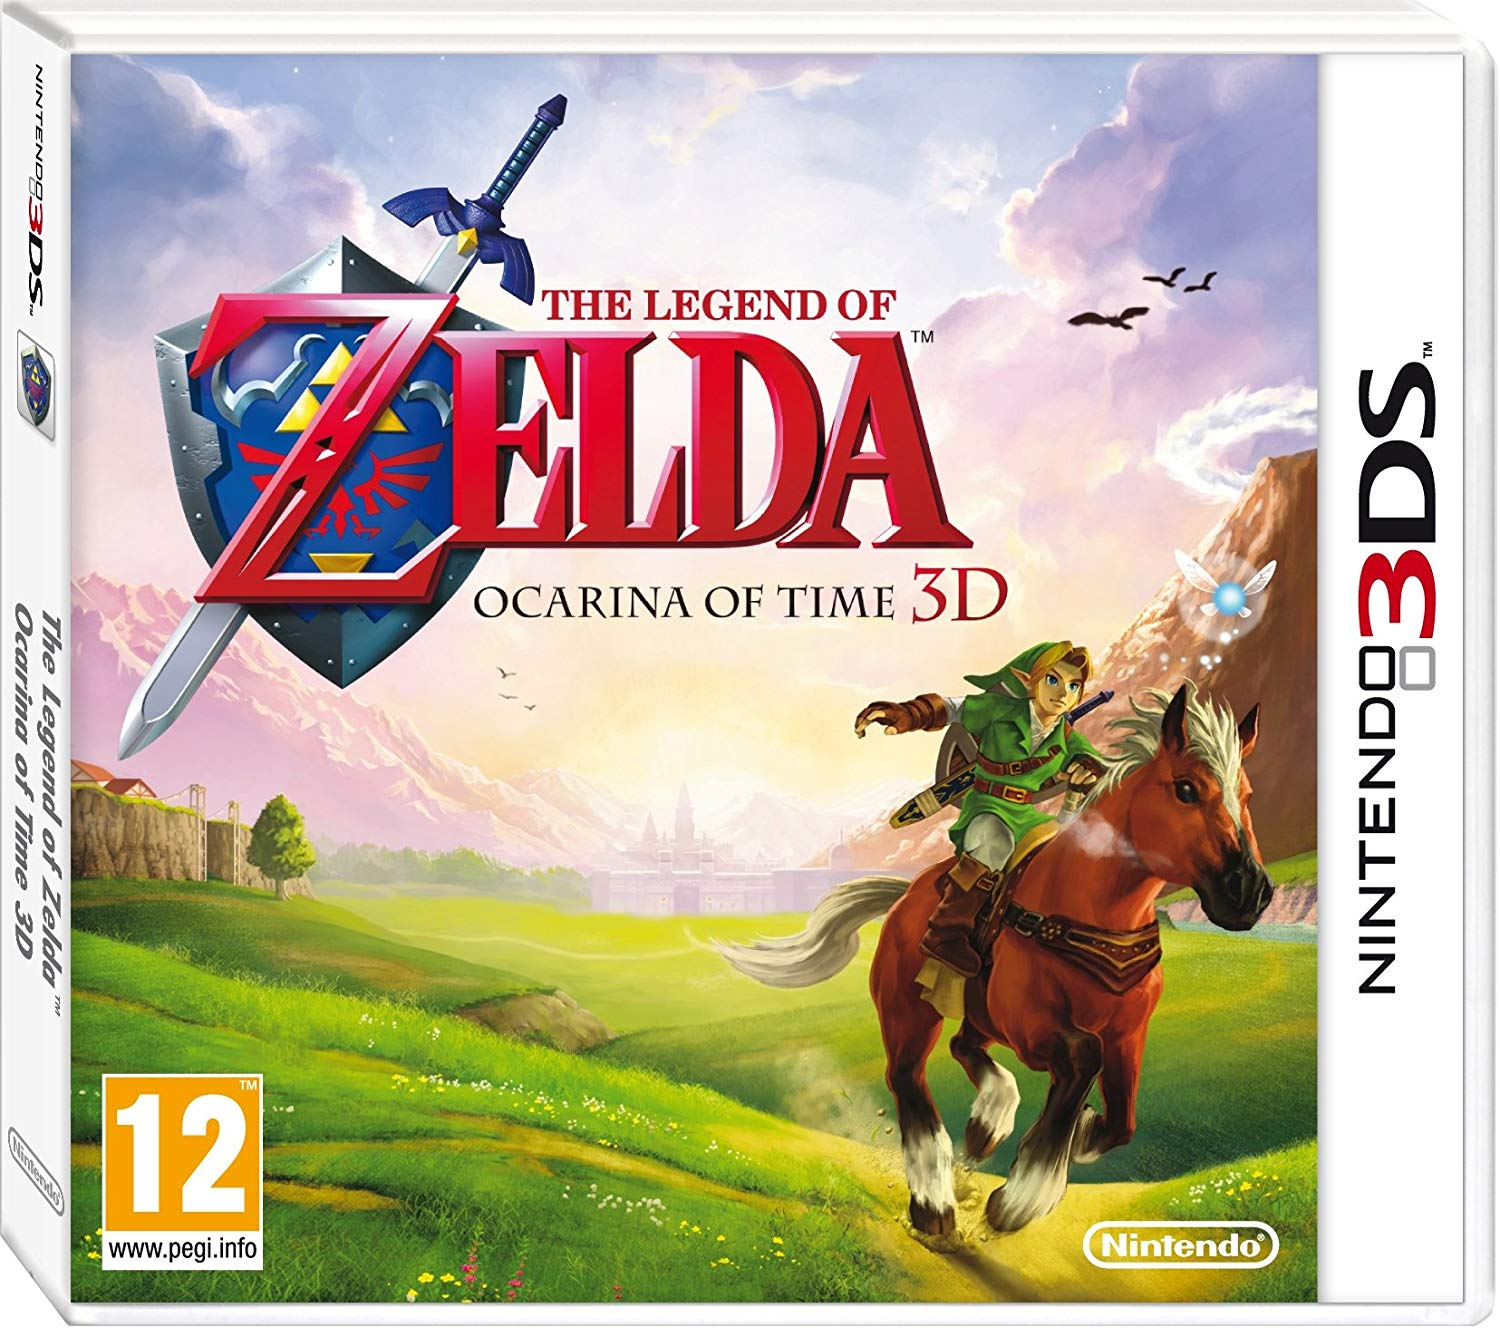 Review | The Legend of Zelda: Ocarina of Time